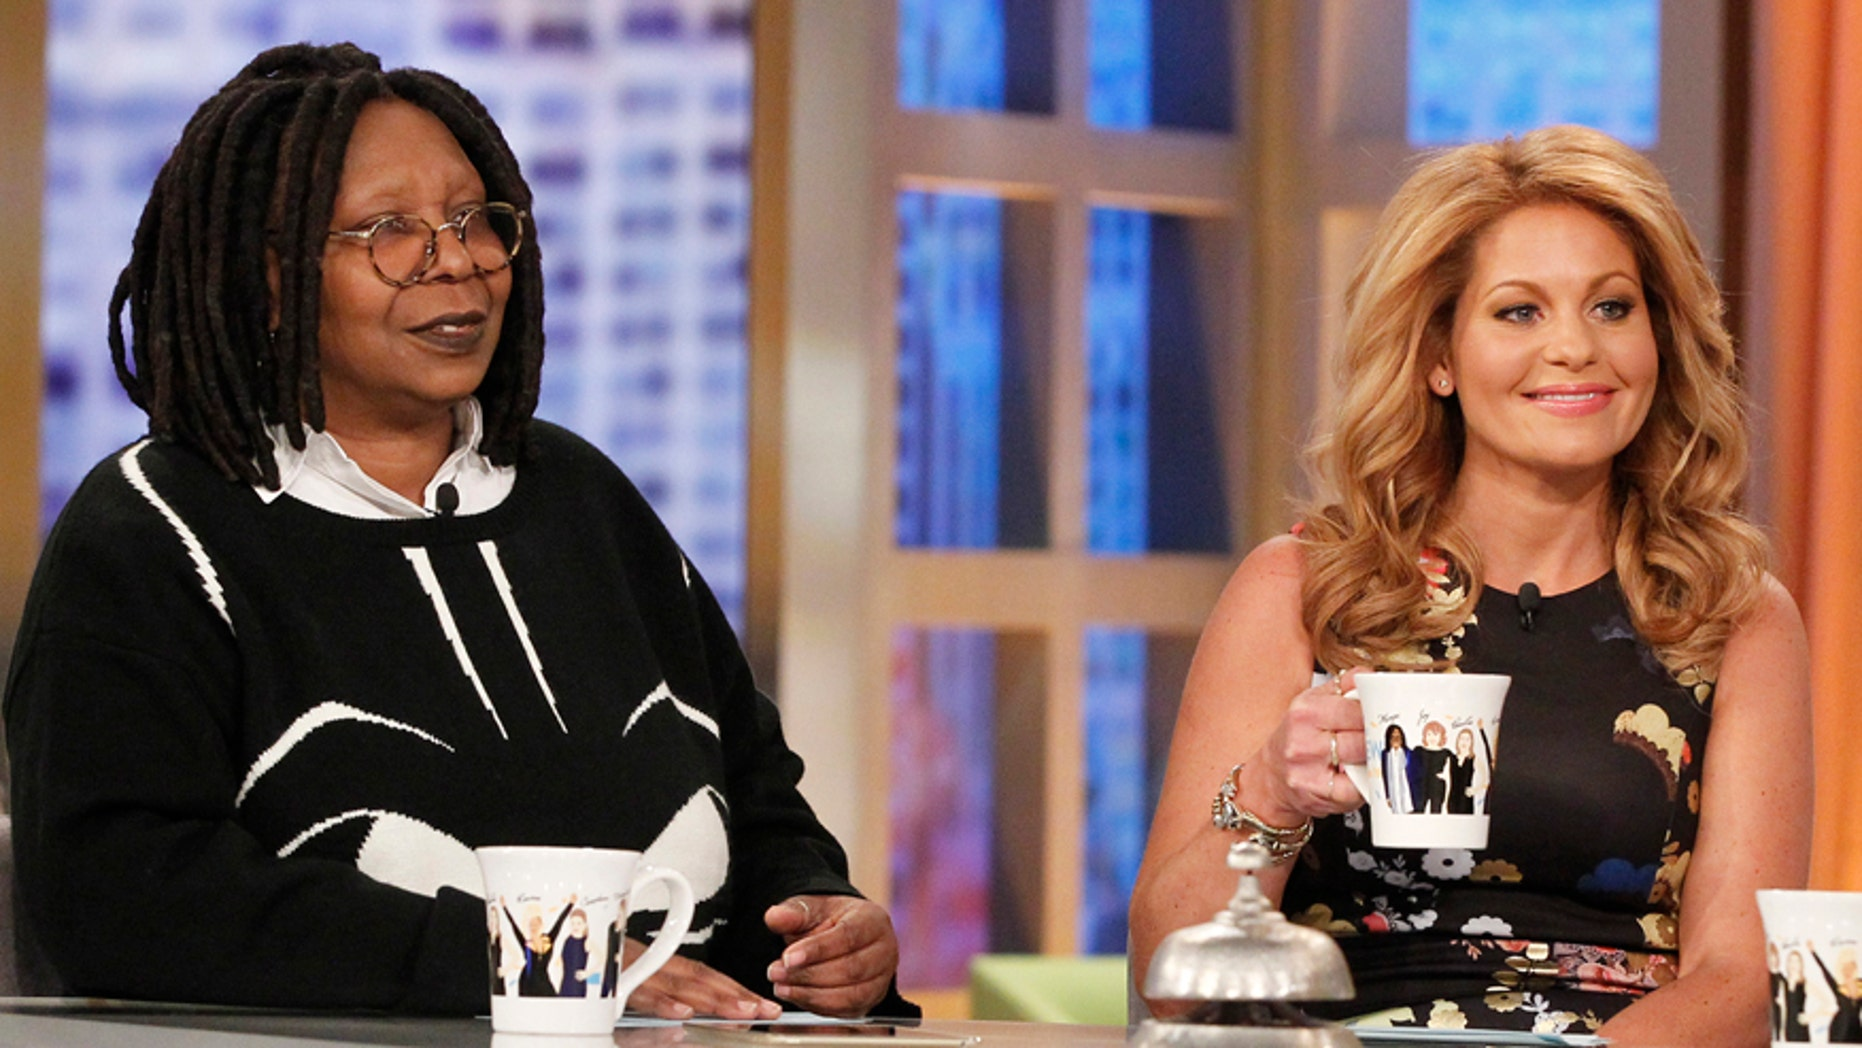 """Whoopi Goldberg, left, and Candace Cameron Bure appear on """"The View."""" (ABC/ Lou Rocco)"""